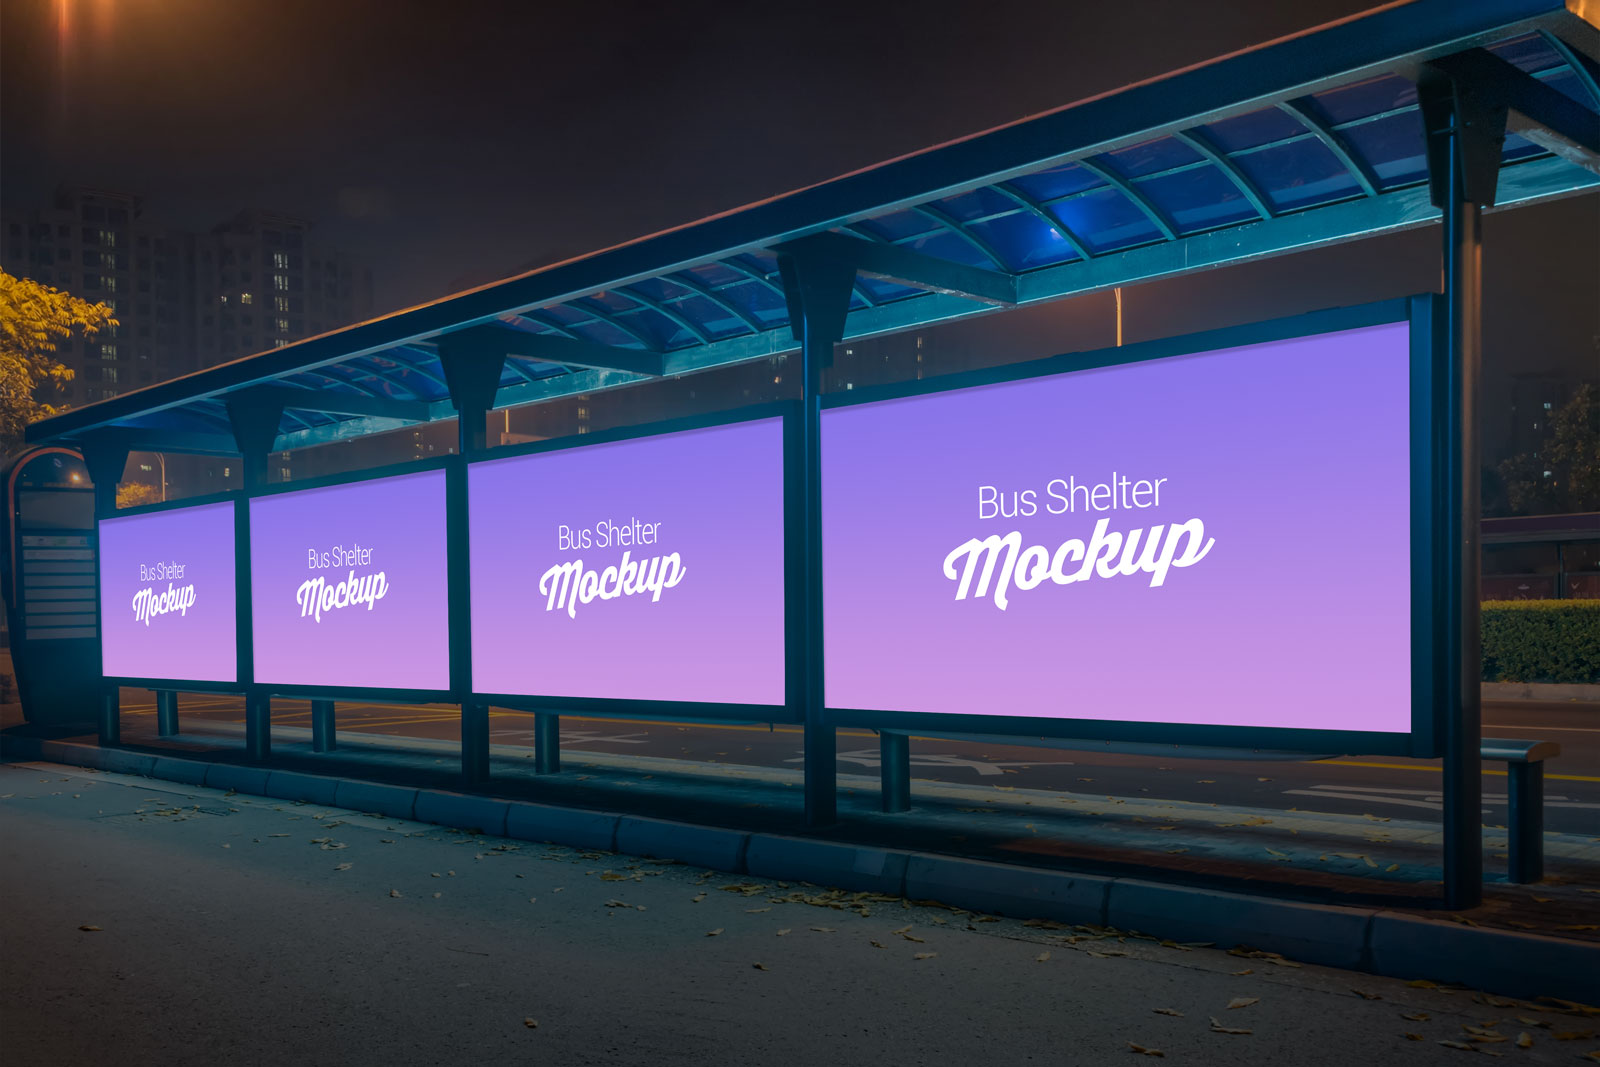 Free-Outdoor-Advertising-Bus-Shelter-Billboard-Mockup-PSD